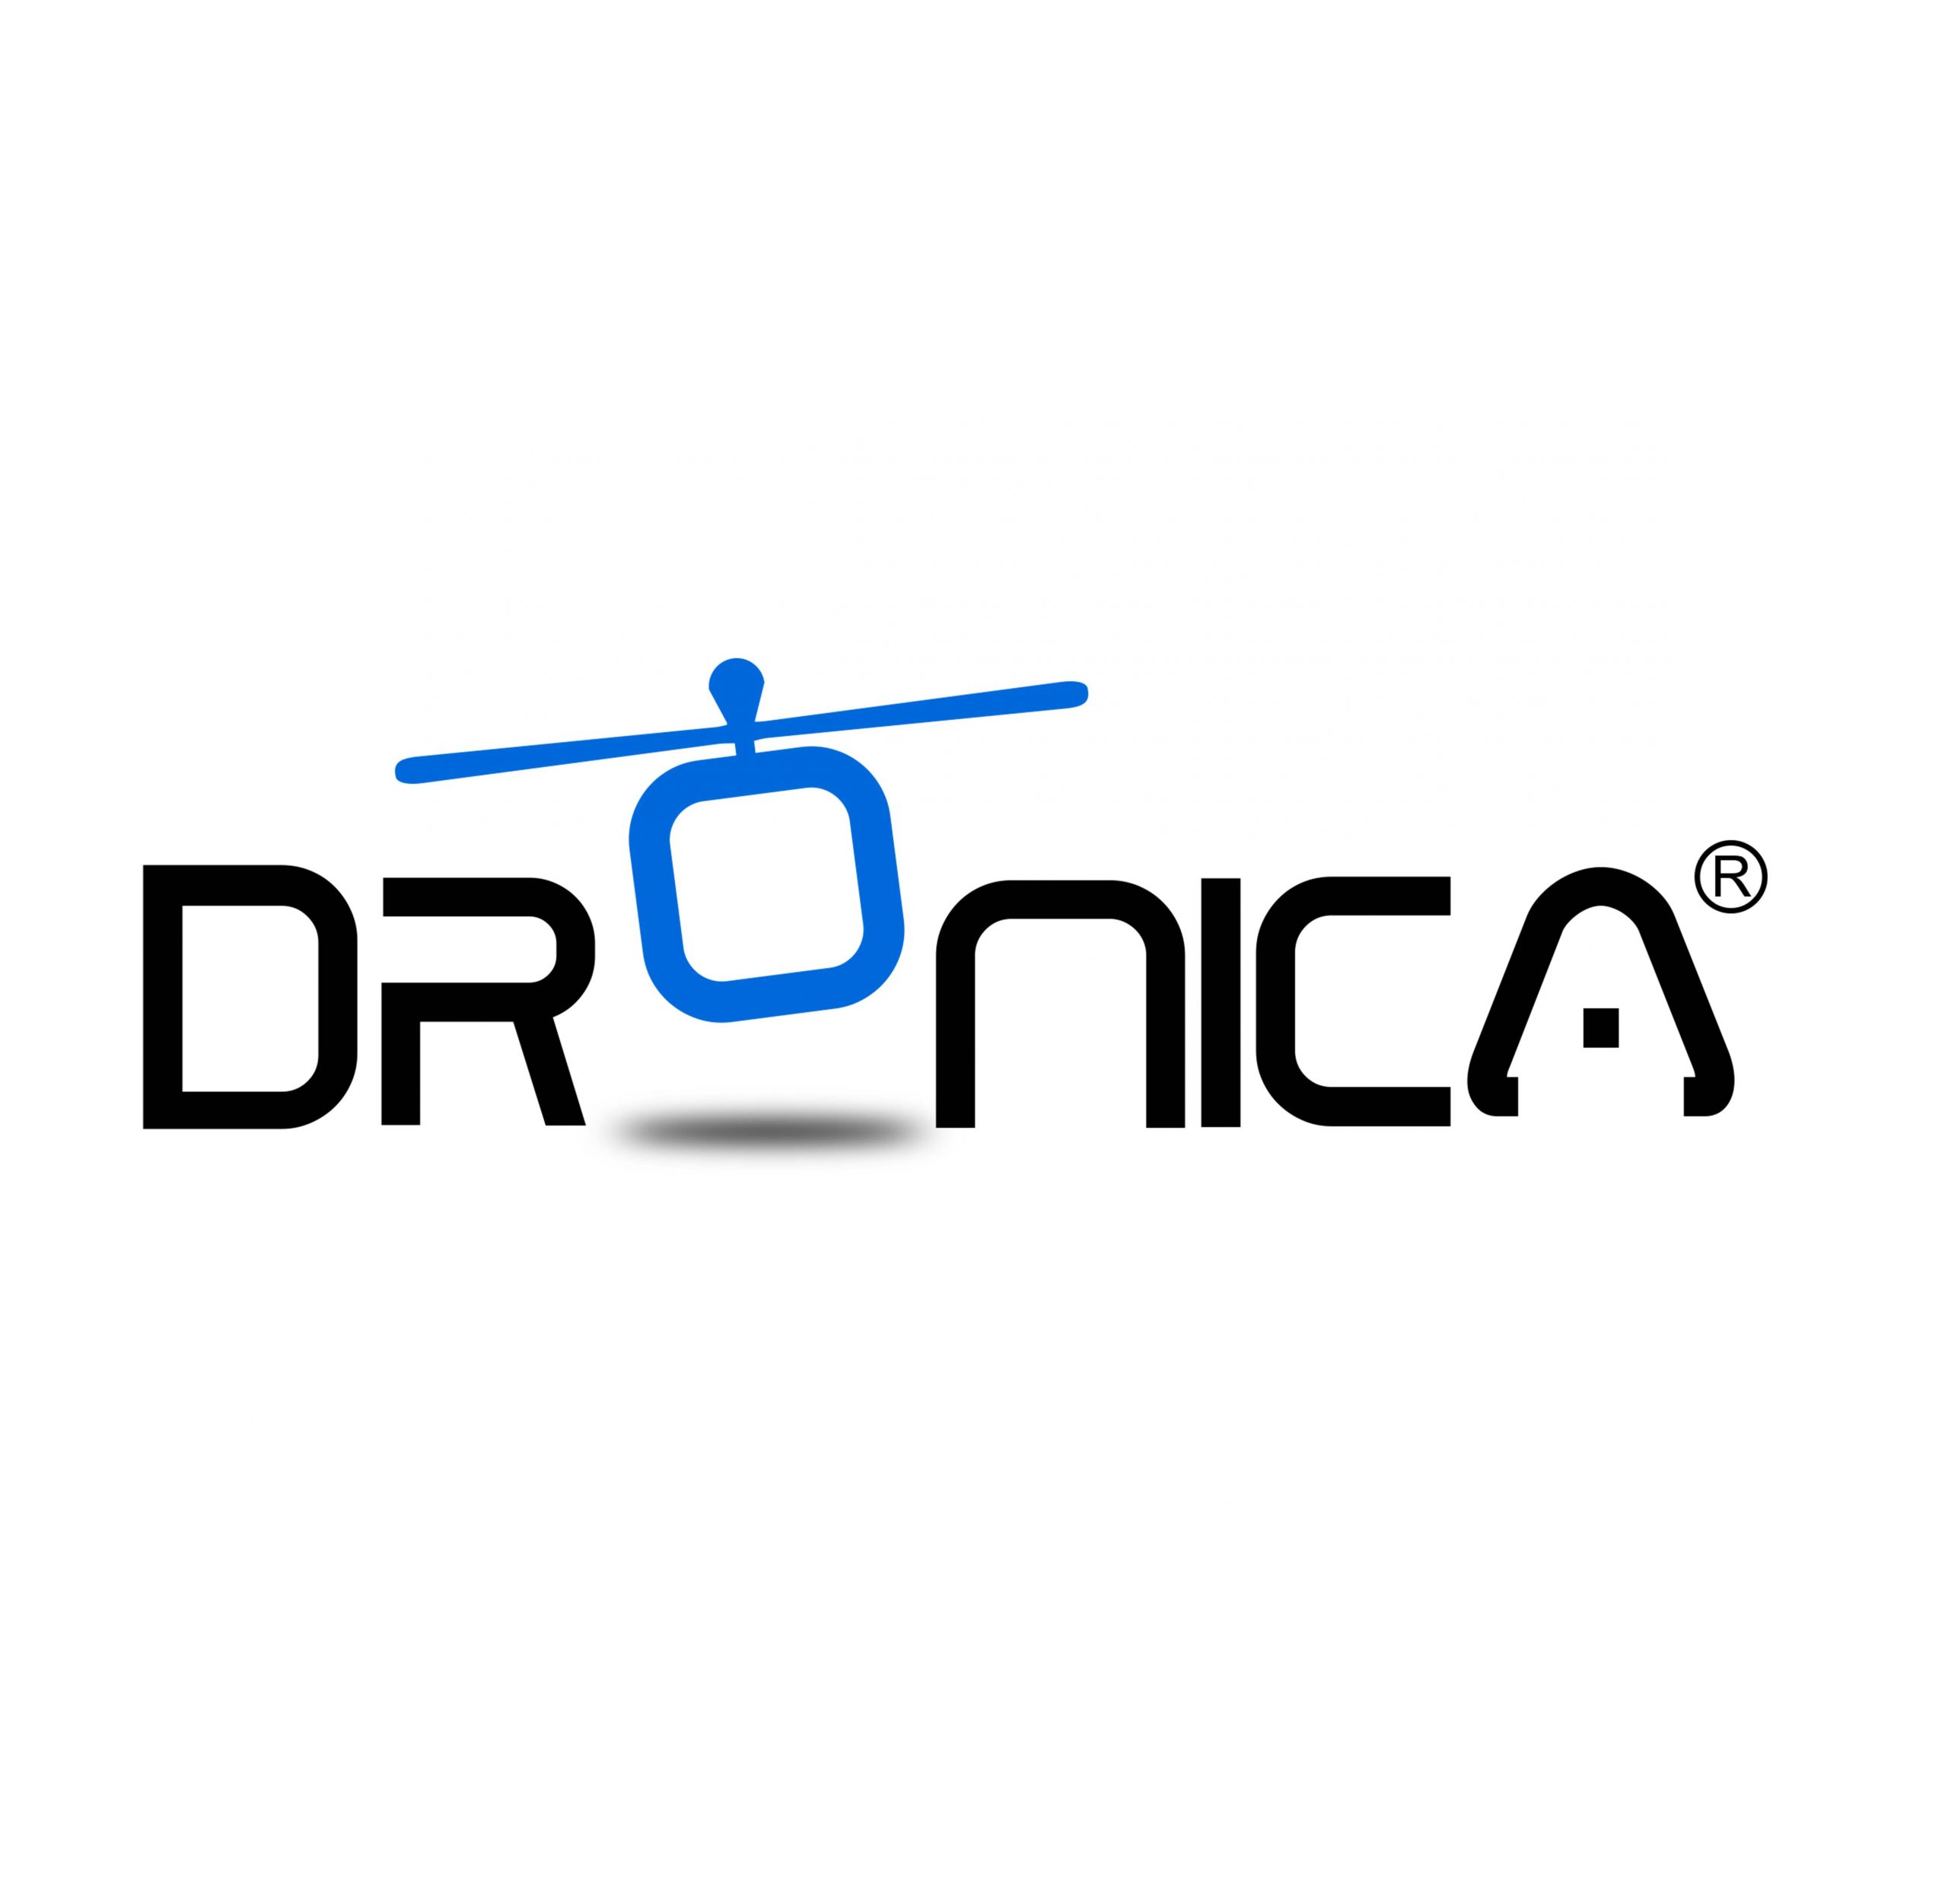 Dronica